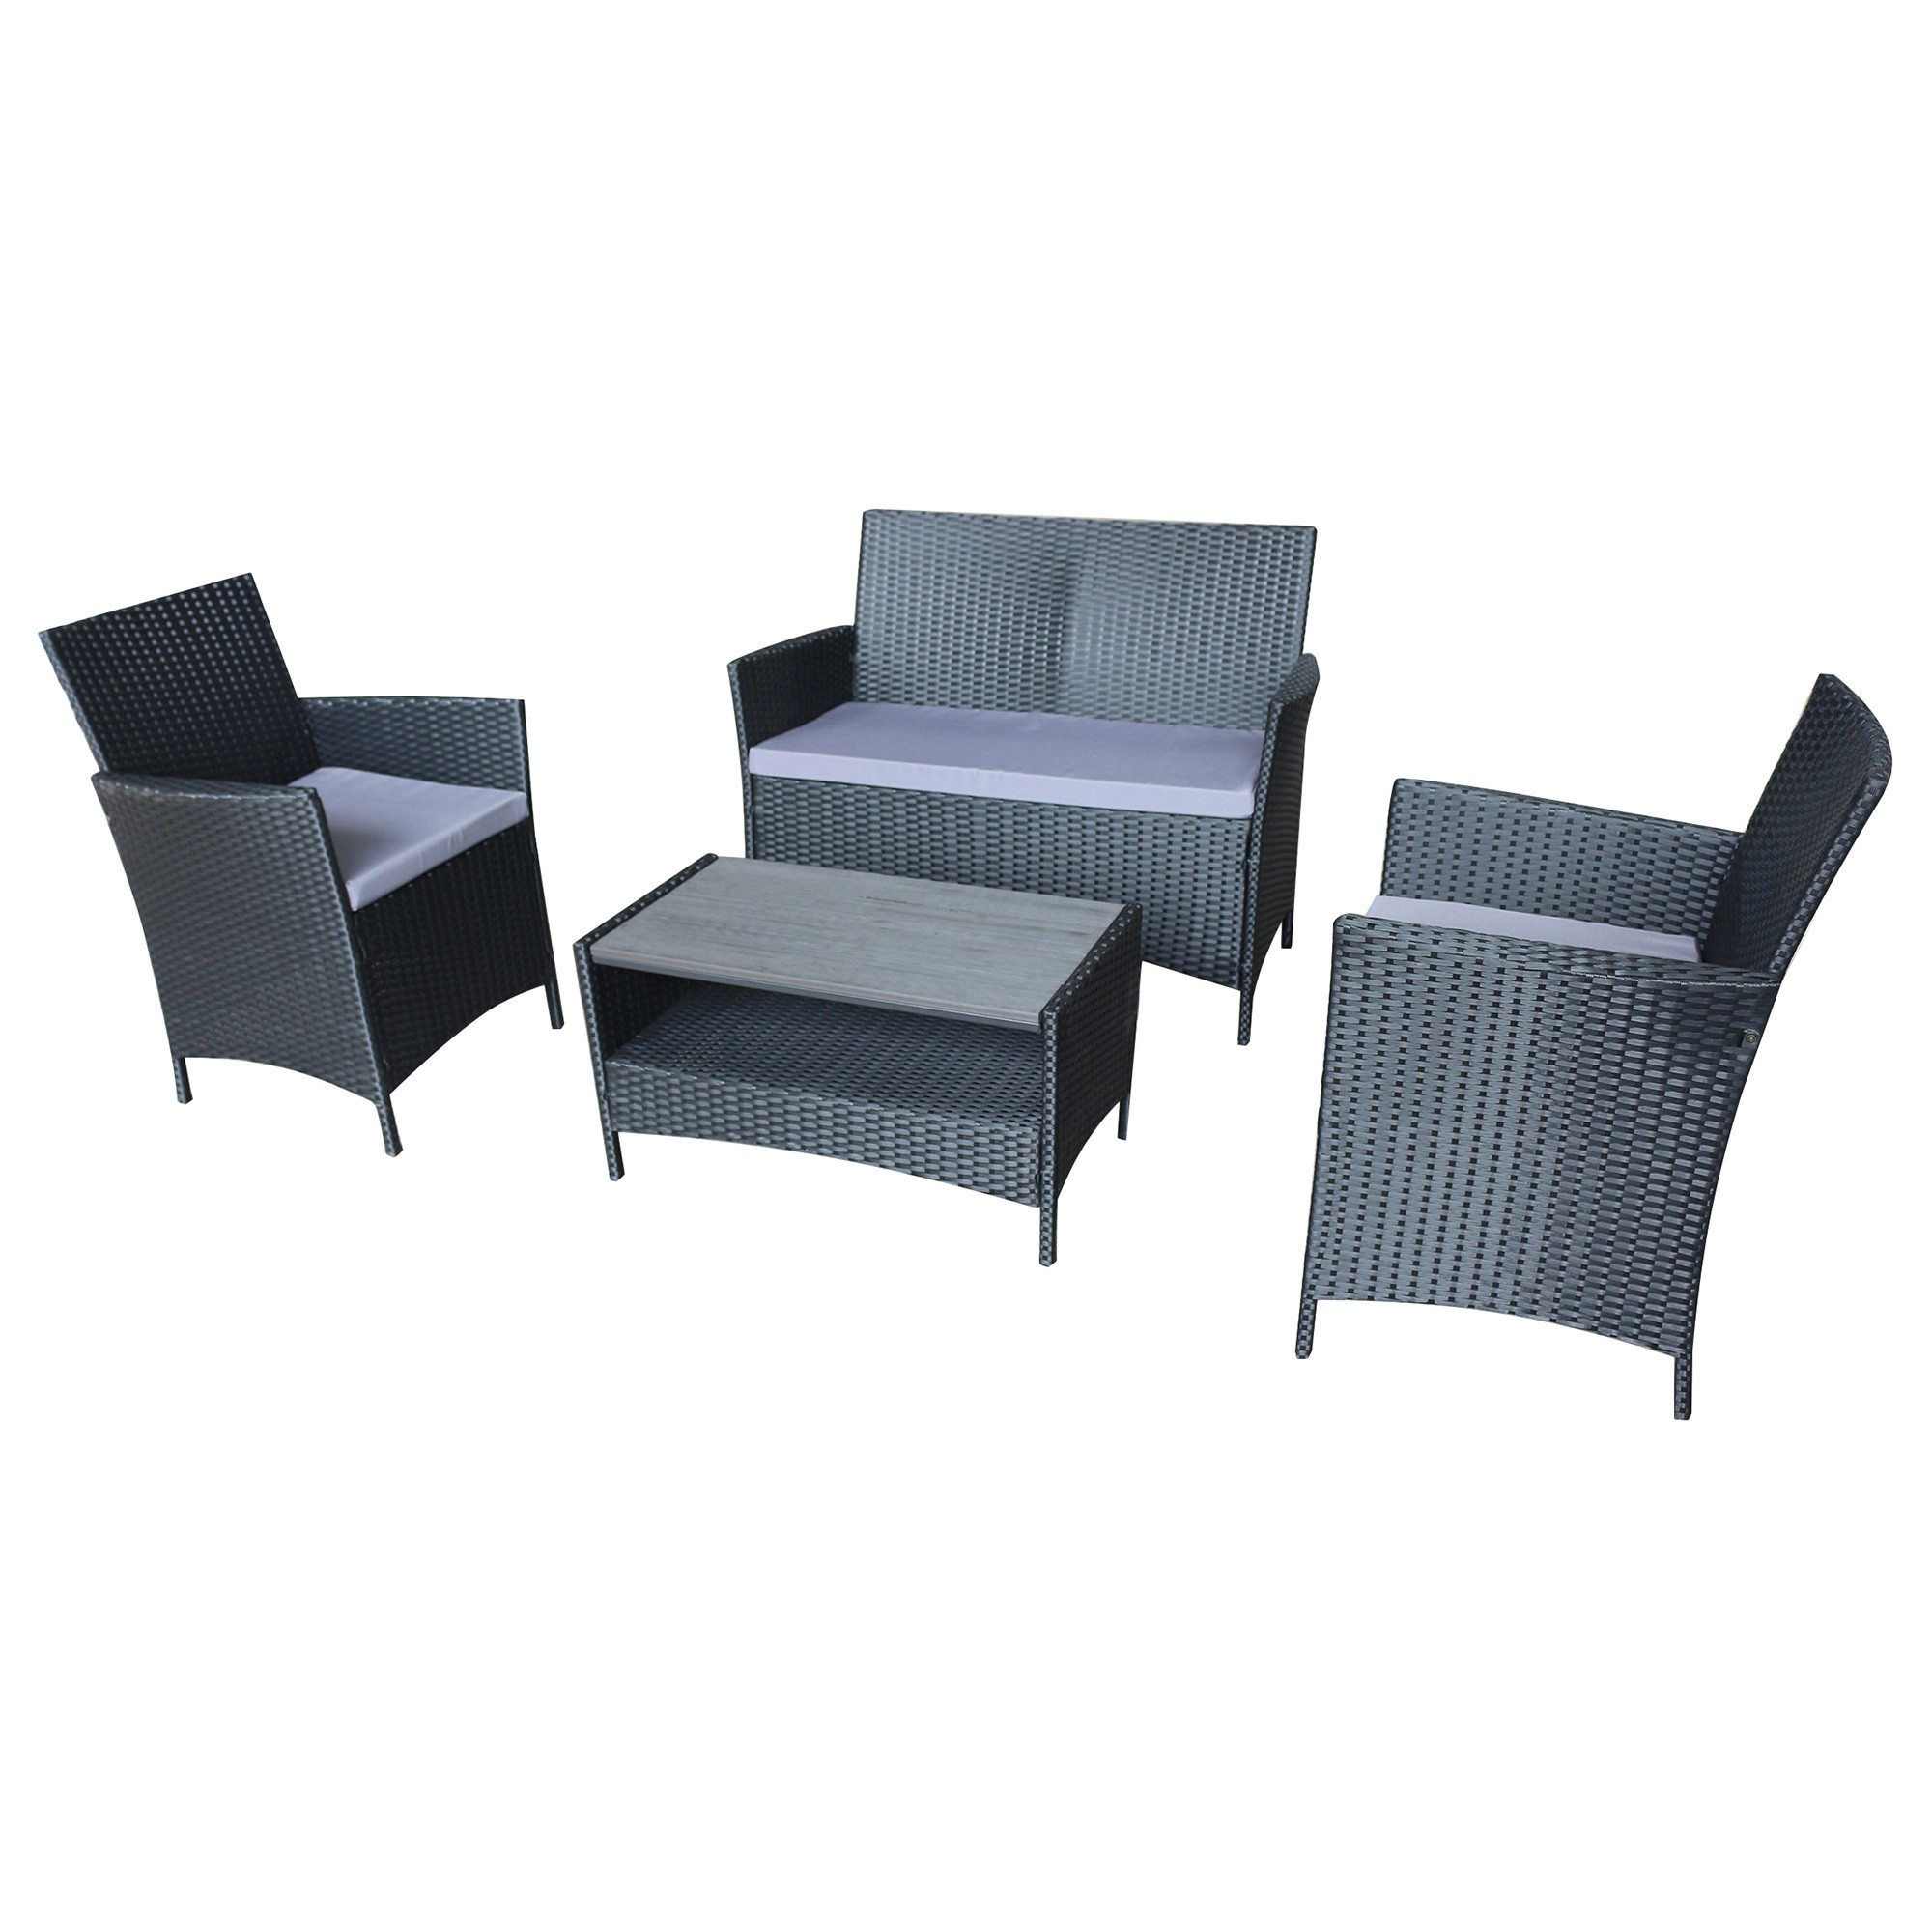 Ravello 4 Piece Outdoor Wicker Lounge Set, Black